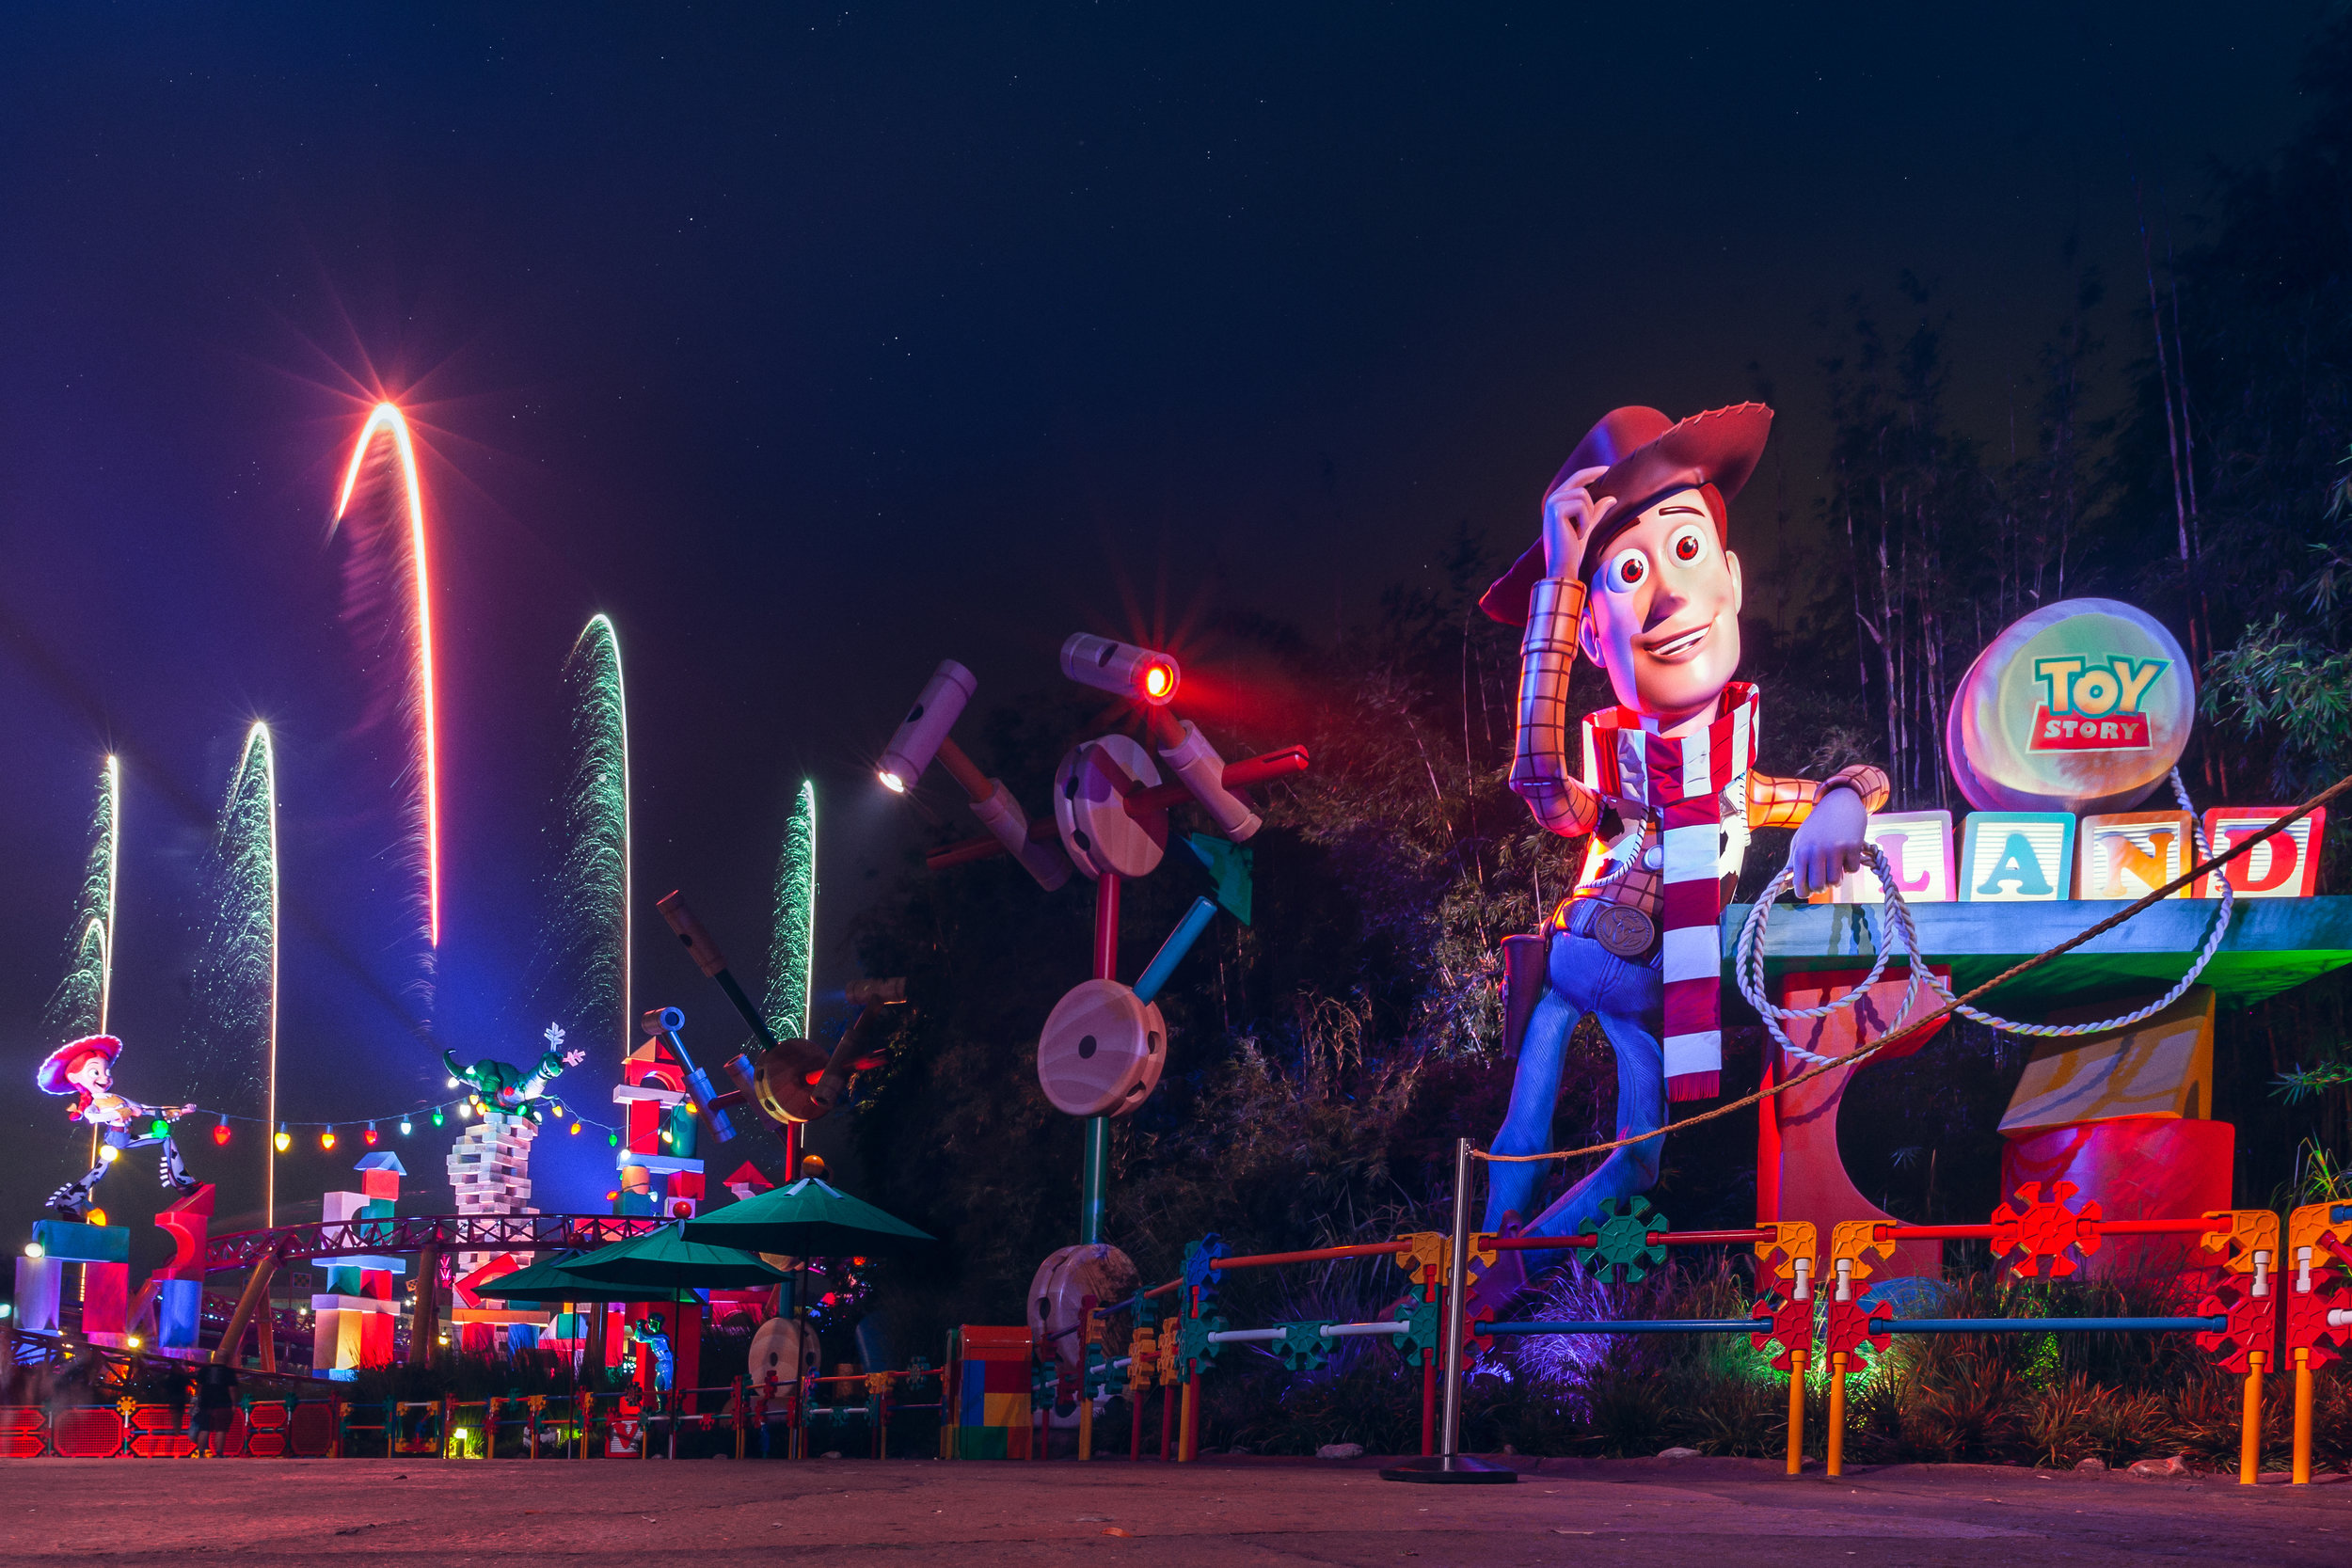 Fireworks at Disney's Toy Story Land in Orlando. By Gilmar Smith, 2018